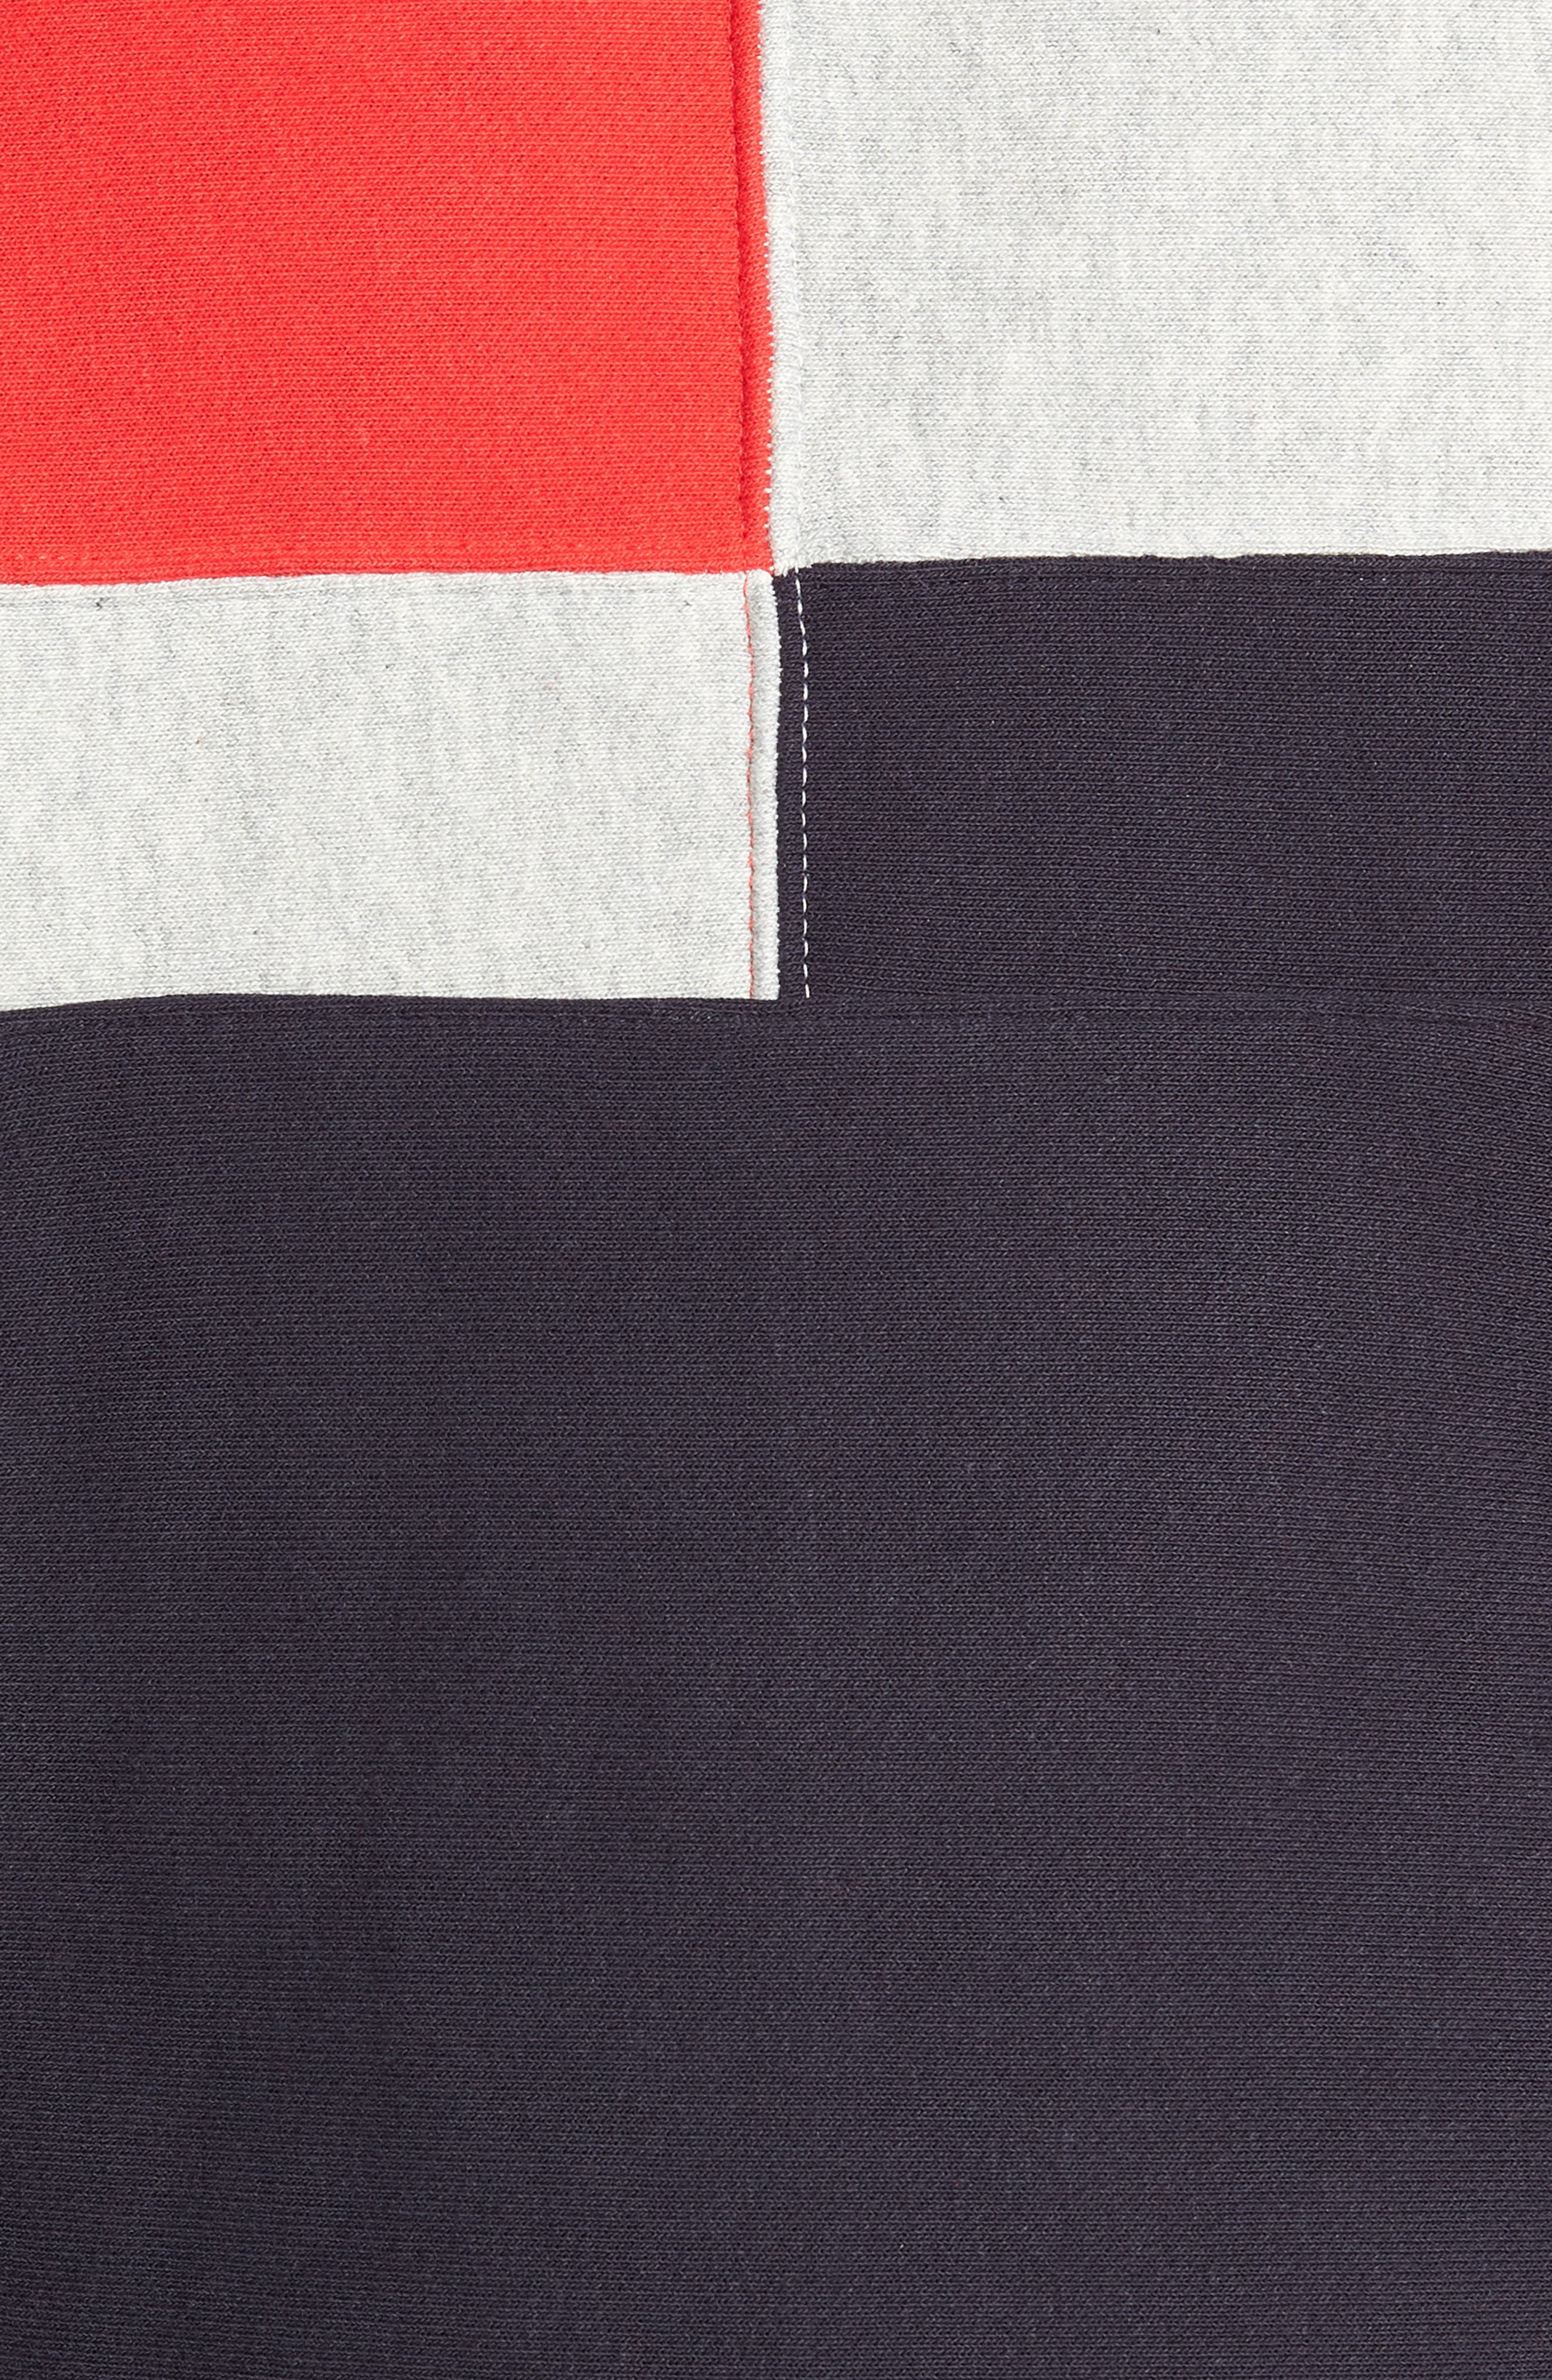 Colorblock Hoodie,                             Alternate thumbnail 5, color,                             NAVY/ OXFORD GREY/ SCARLET